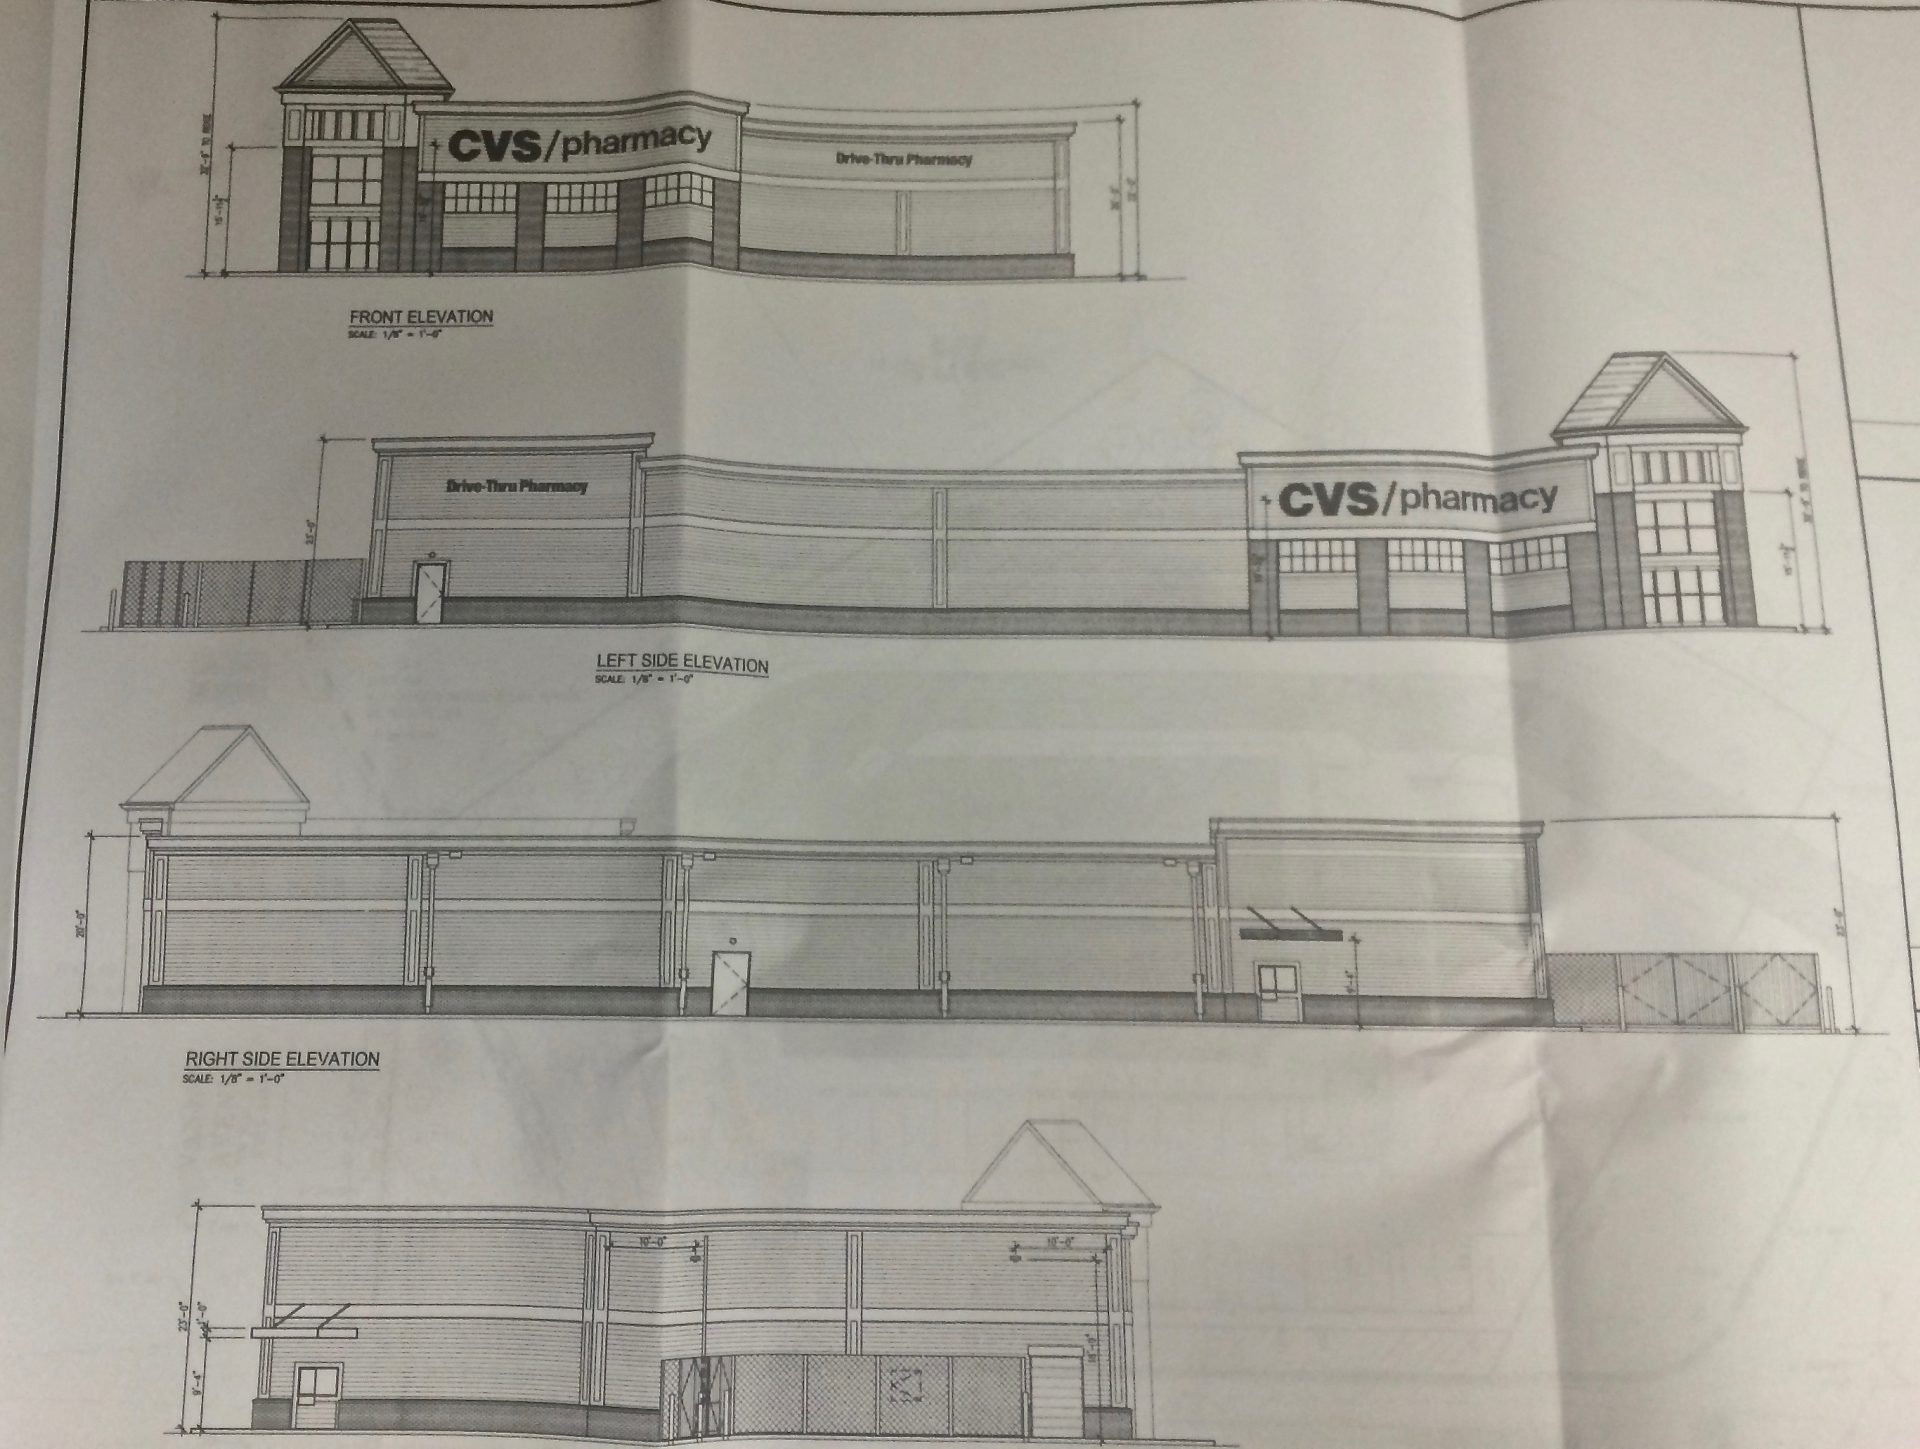 Cvs And Traffic Light On Rt 31 Pennington Residents Object Schematic